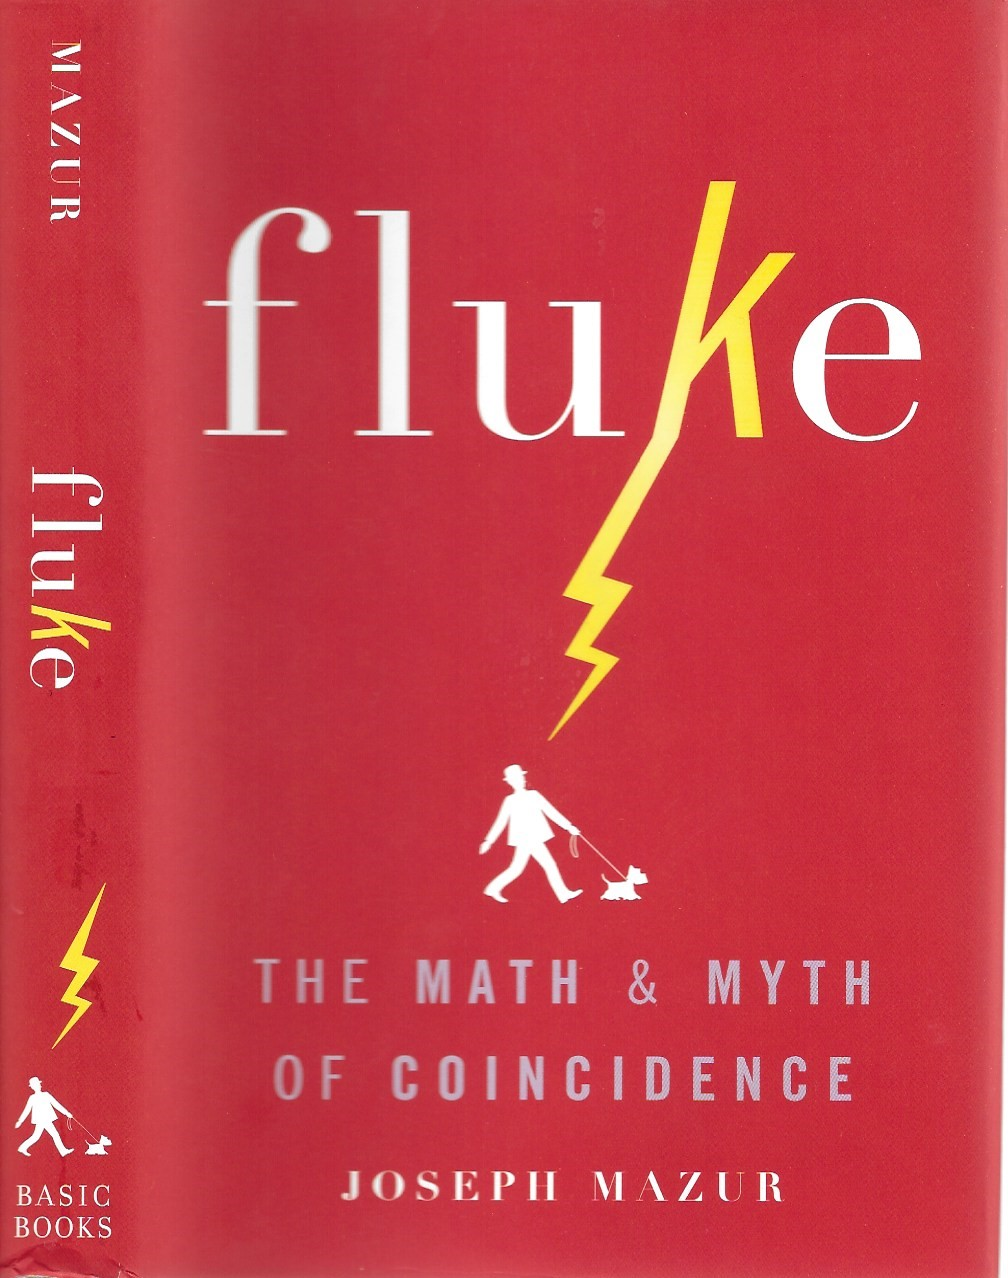 Image for Fluke: The Math & Myth of Coincidence